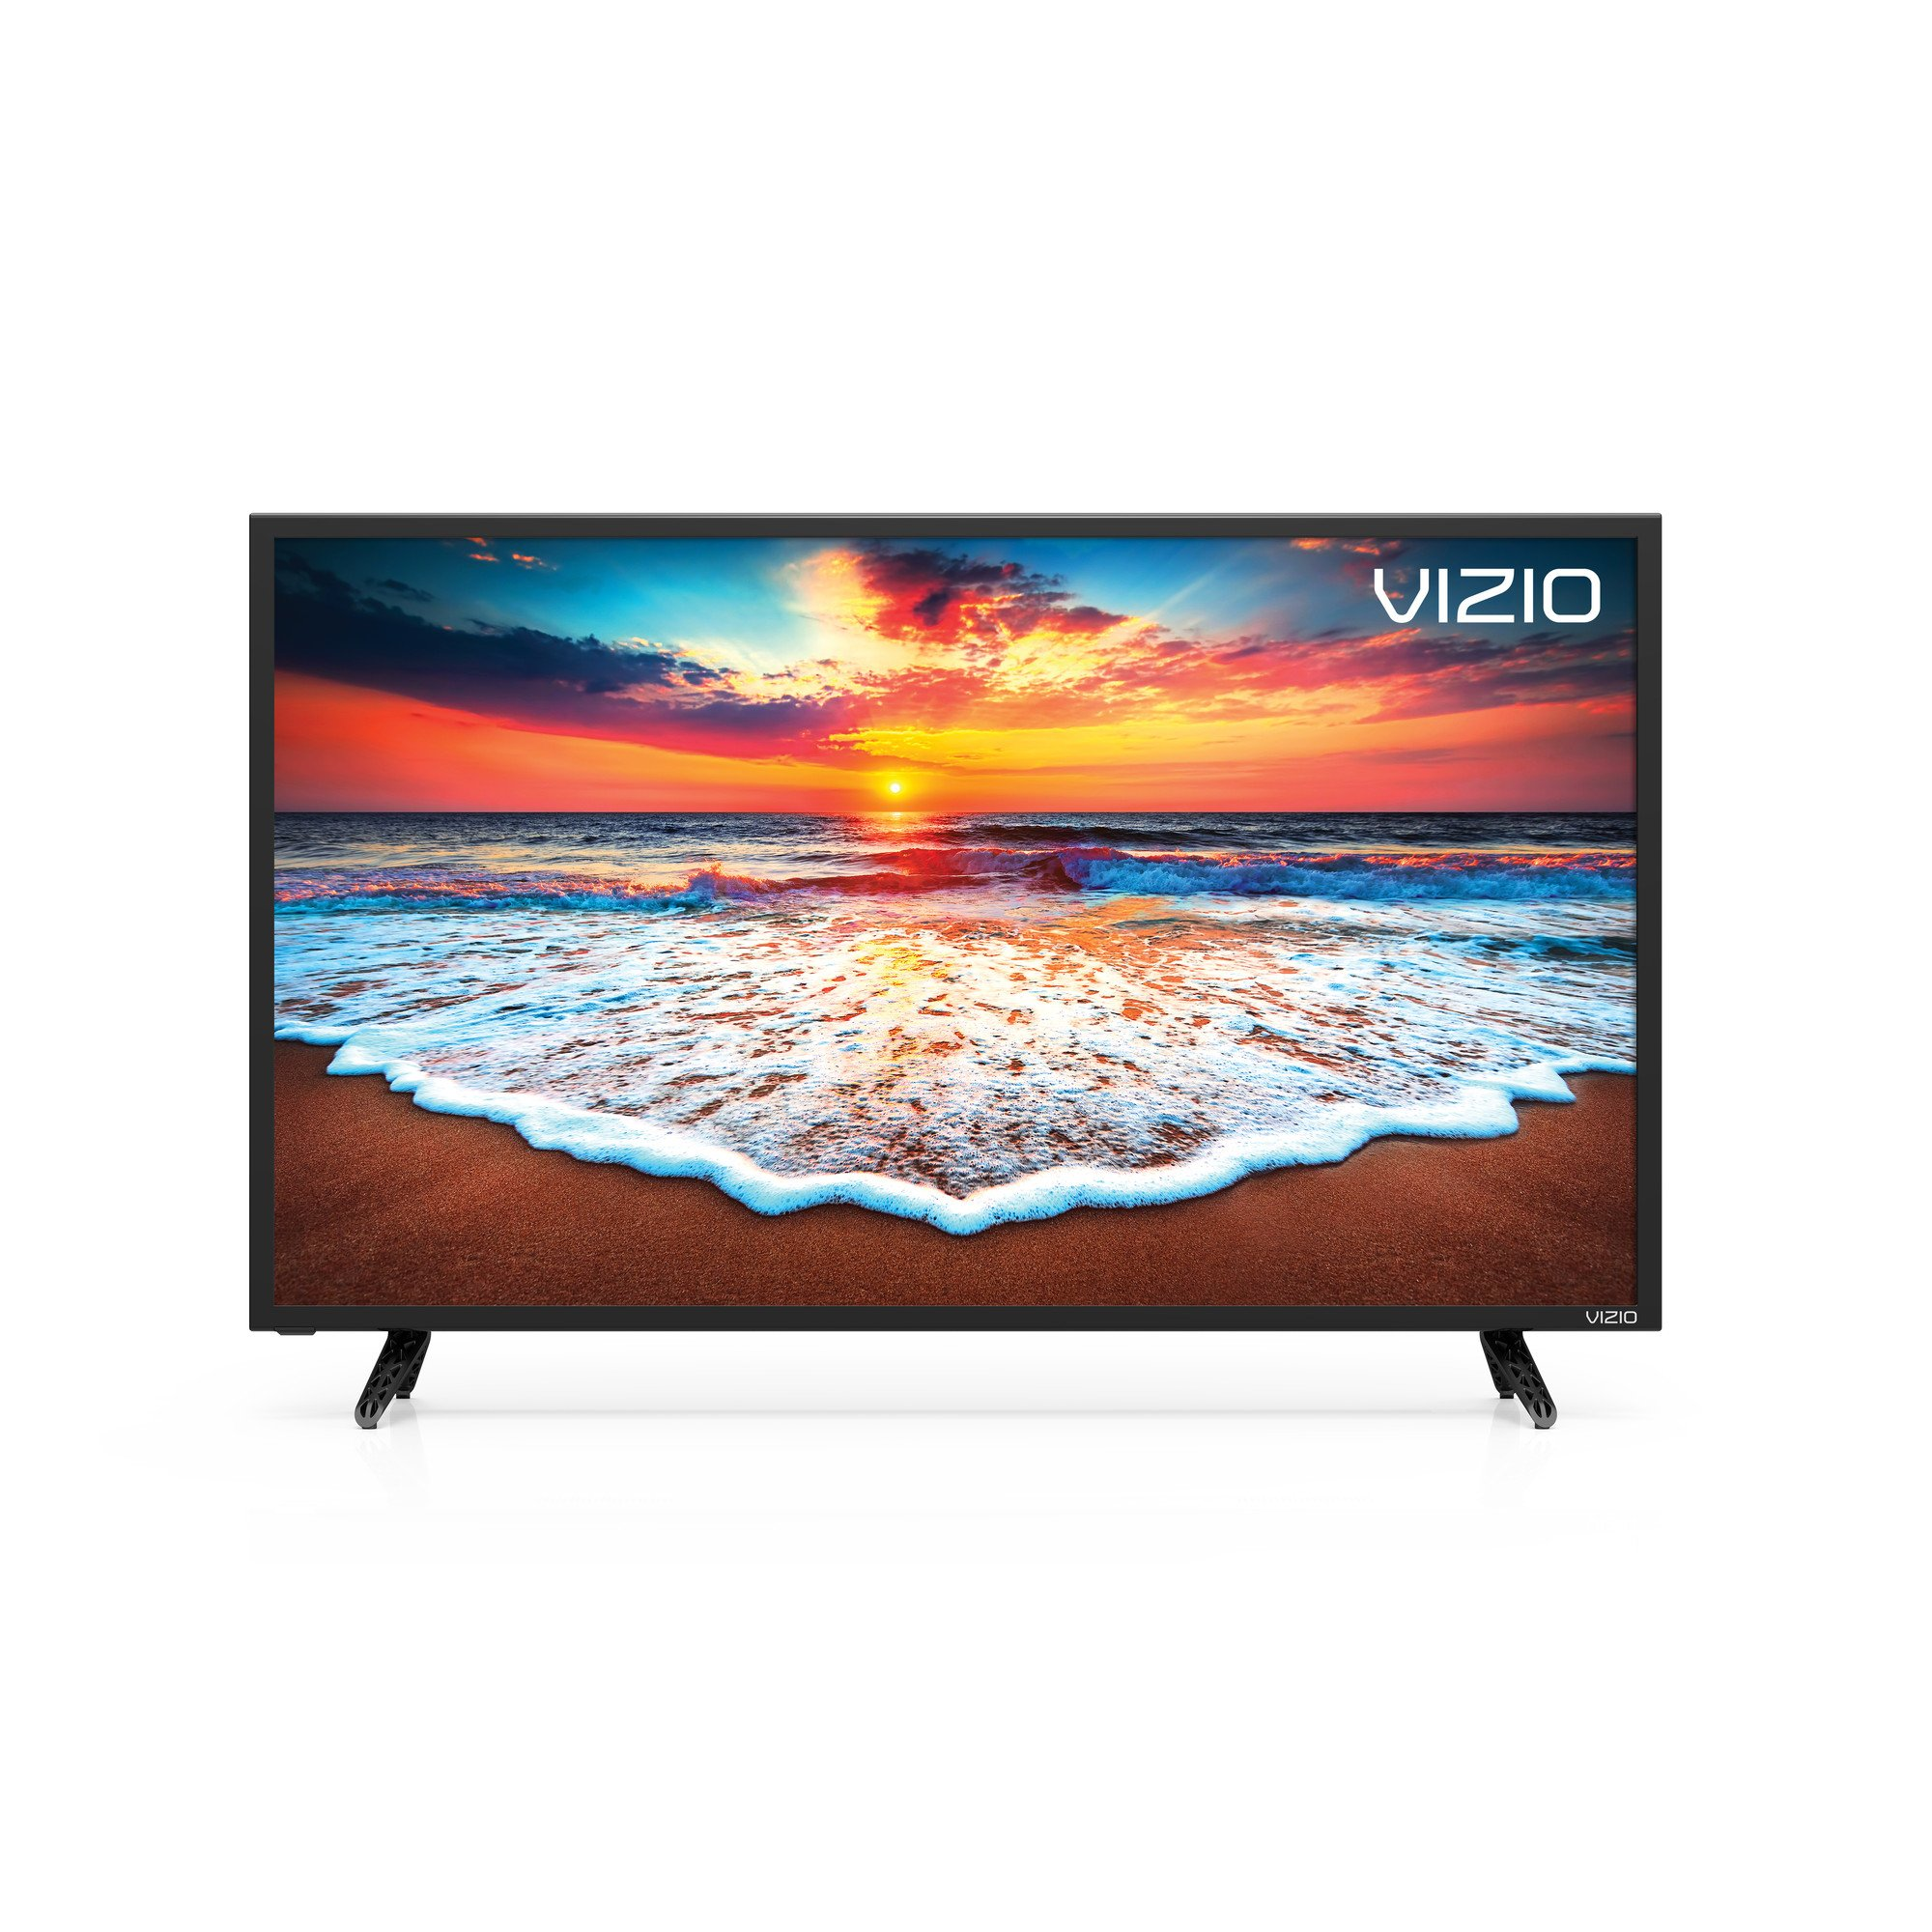 VIZIO SmartCast D-Series 32'' Class FHD (1080P) Smart Full-Array LED TV D32f-F1 by VIZIO